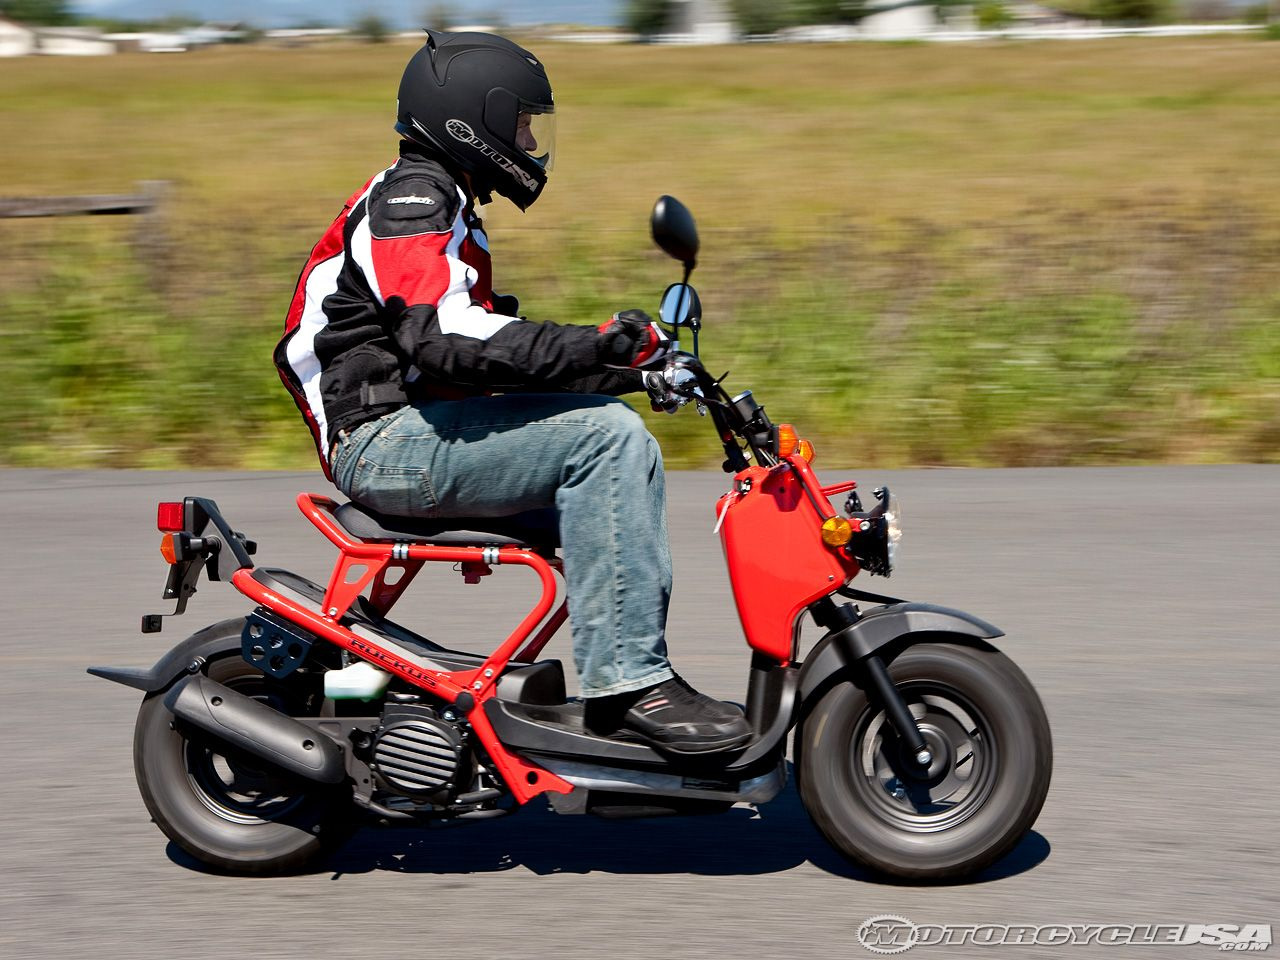 2009 Honda Ruckus Scooter Review on Countersteer